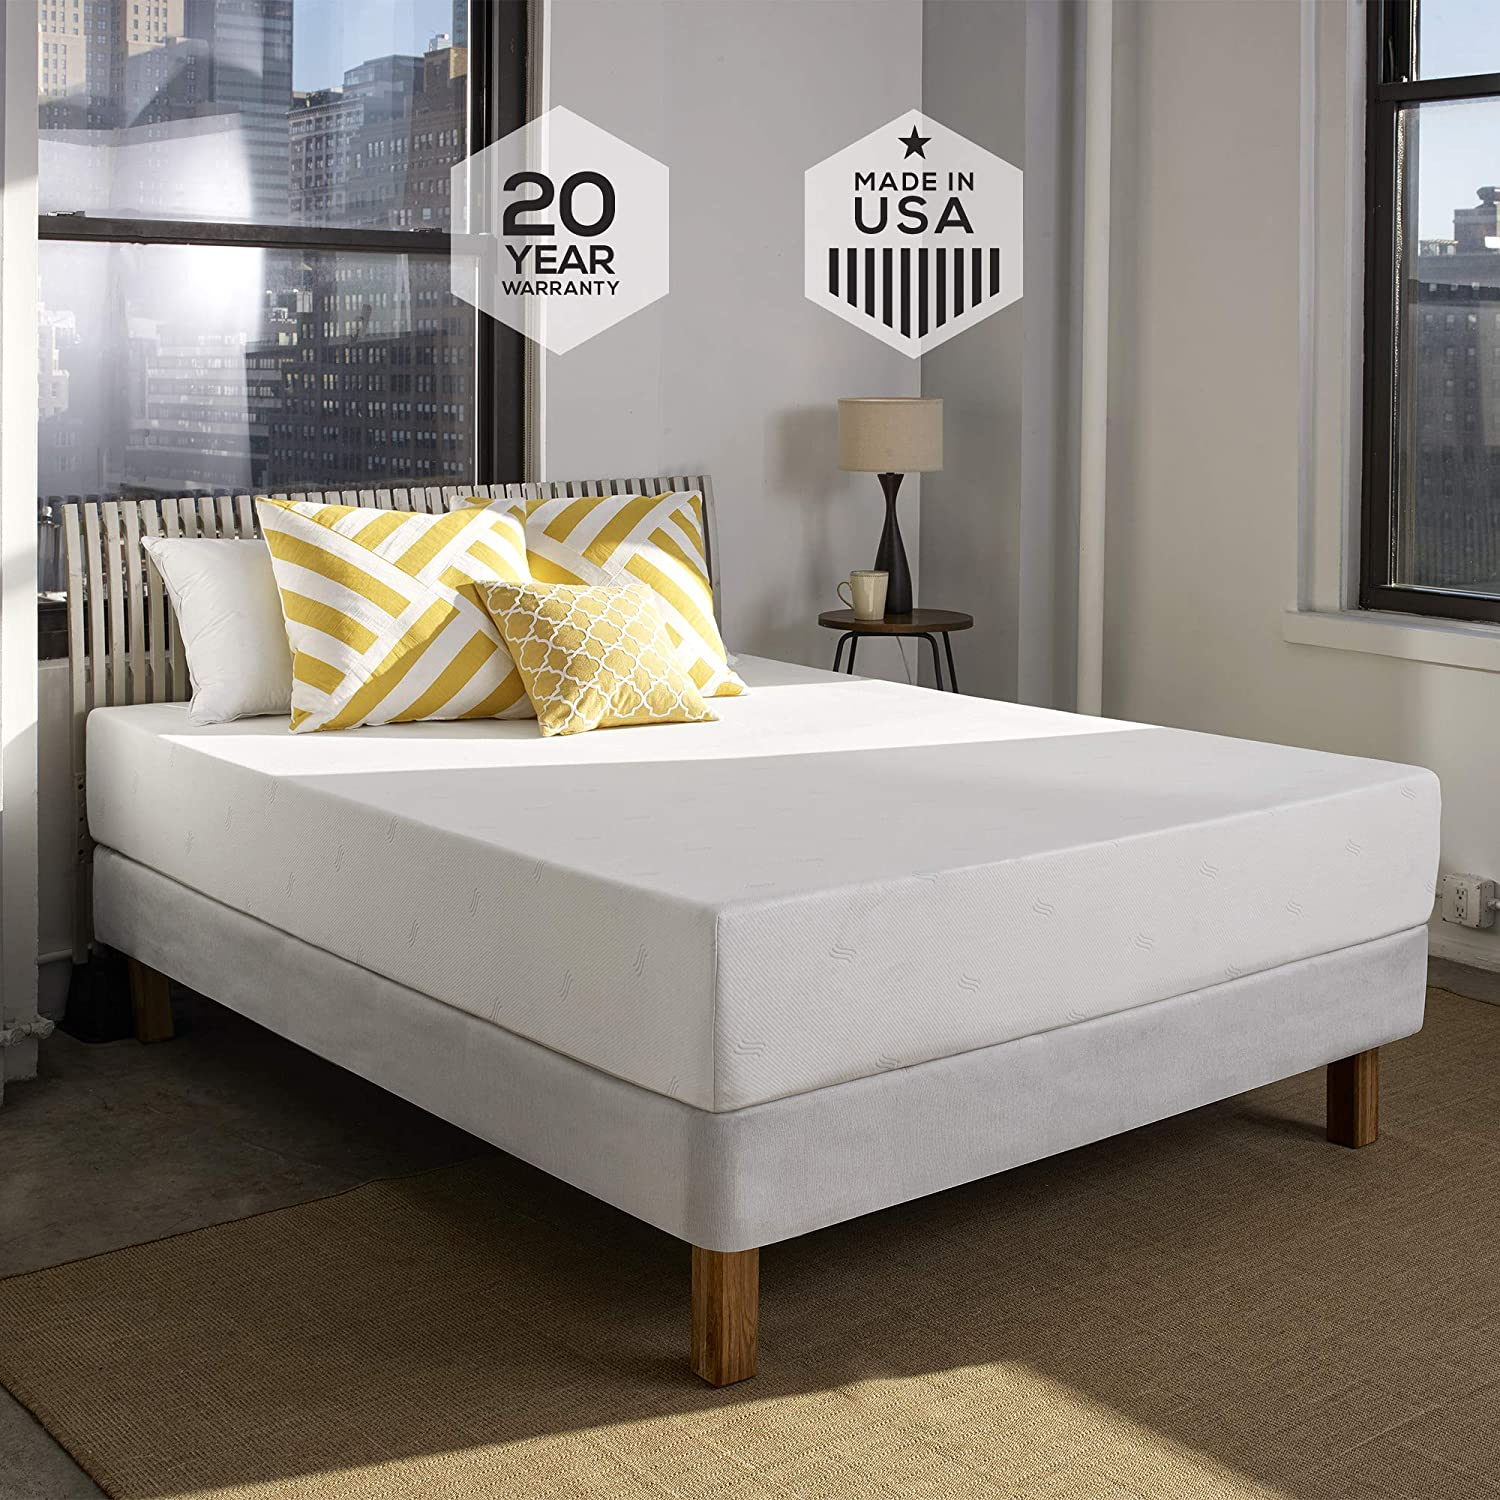 Top 10 Best Memory Foam Mattress (2020 Review & Buying Guide) 2